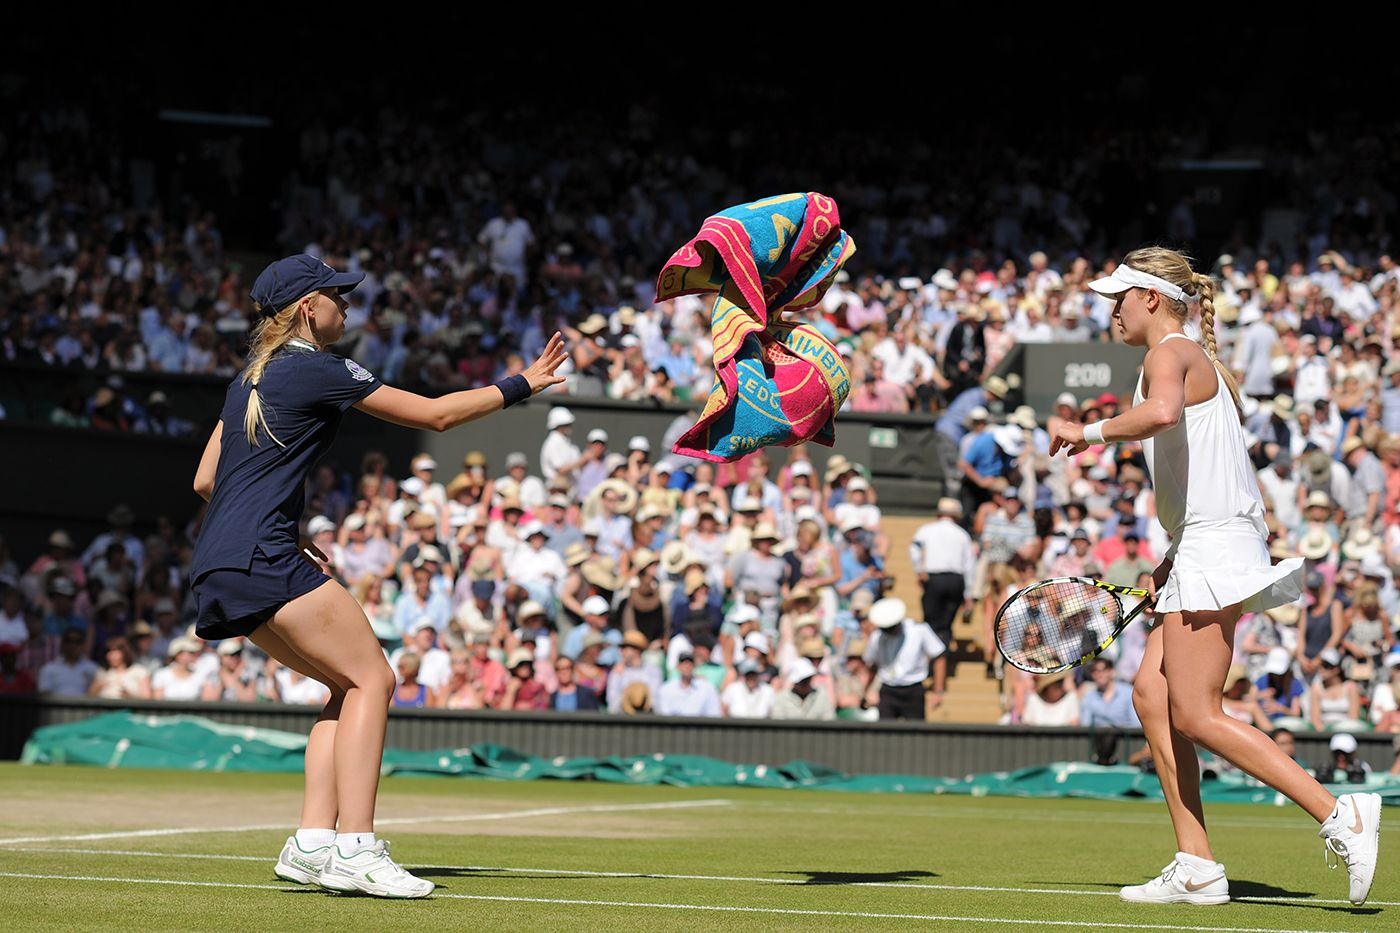 Eugenie Bouchard throws a towel to a Ball girl on Centre